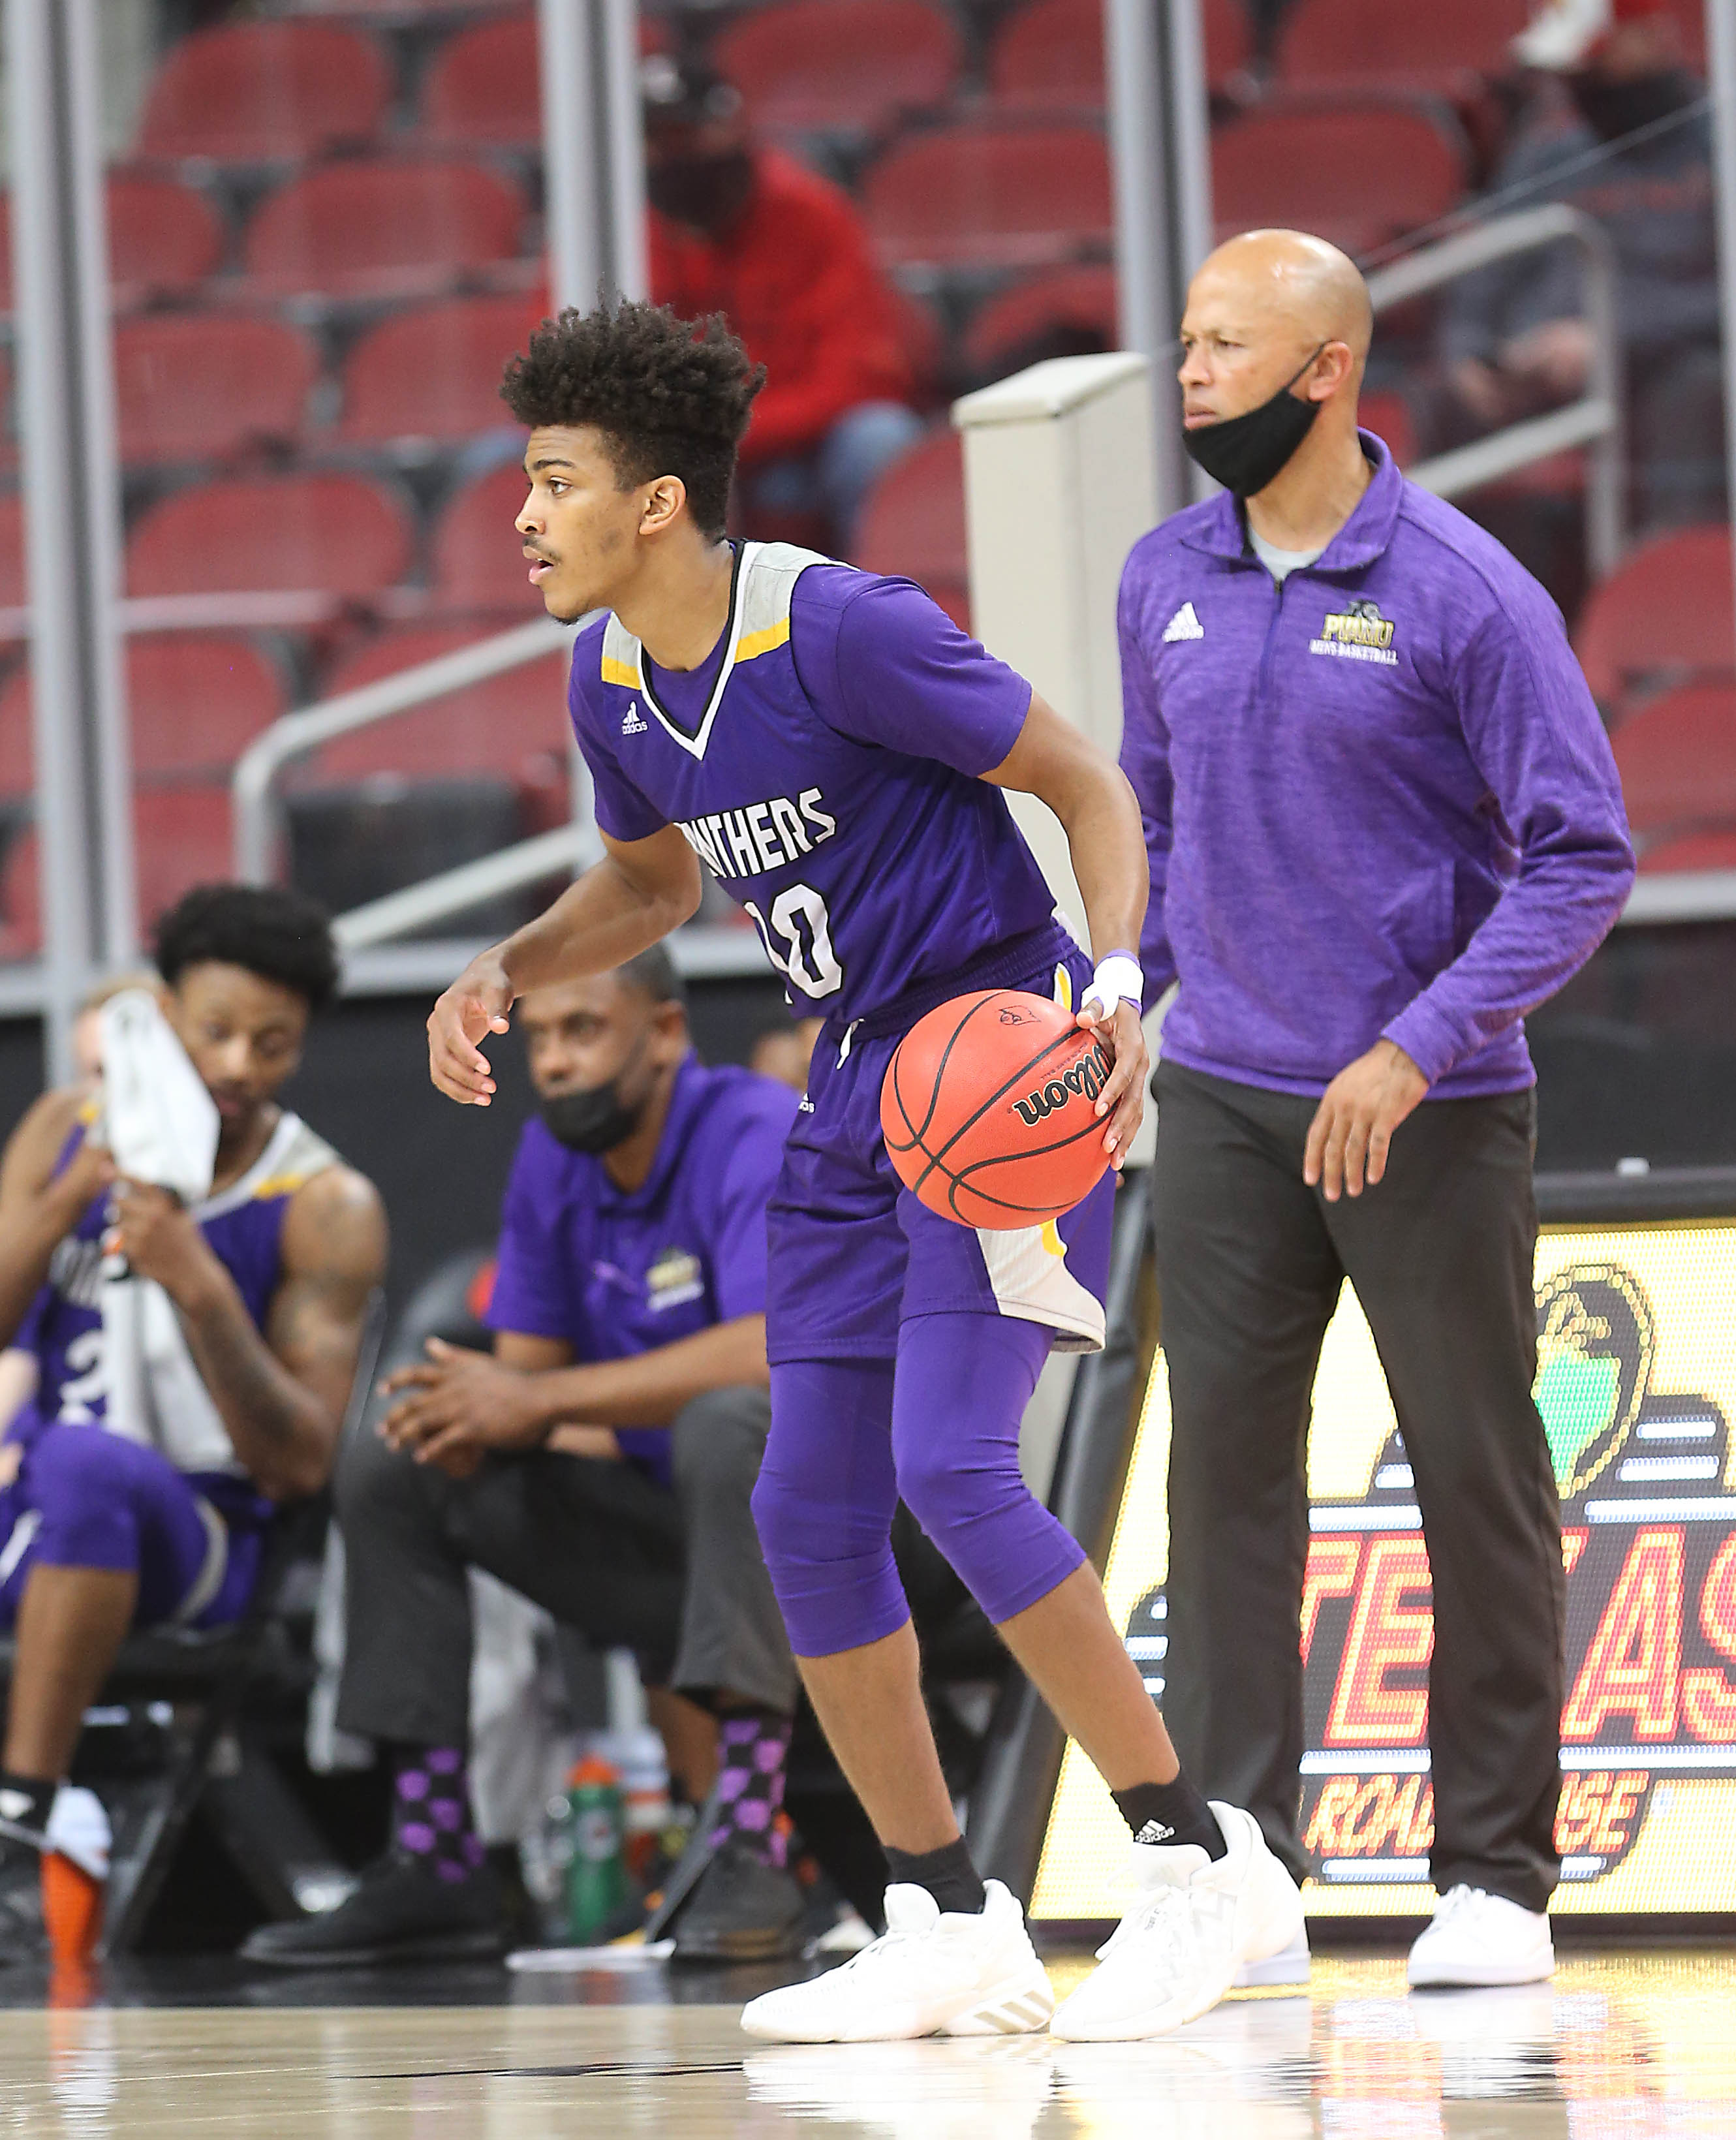 Prairie View player Jeremiah Gambrell Jr. brings the ball up court against Louisville at the KFC Yum! Center.